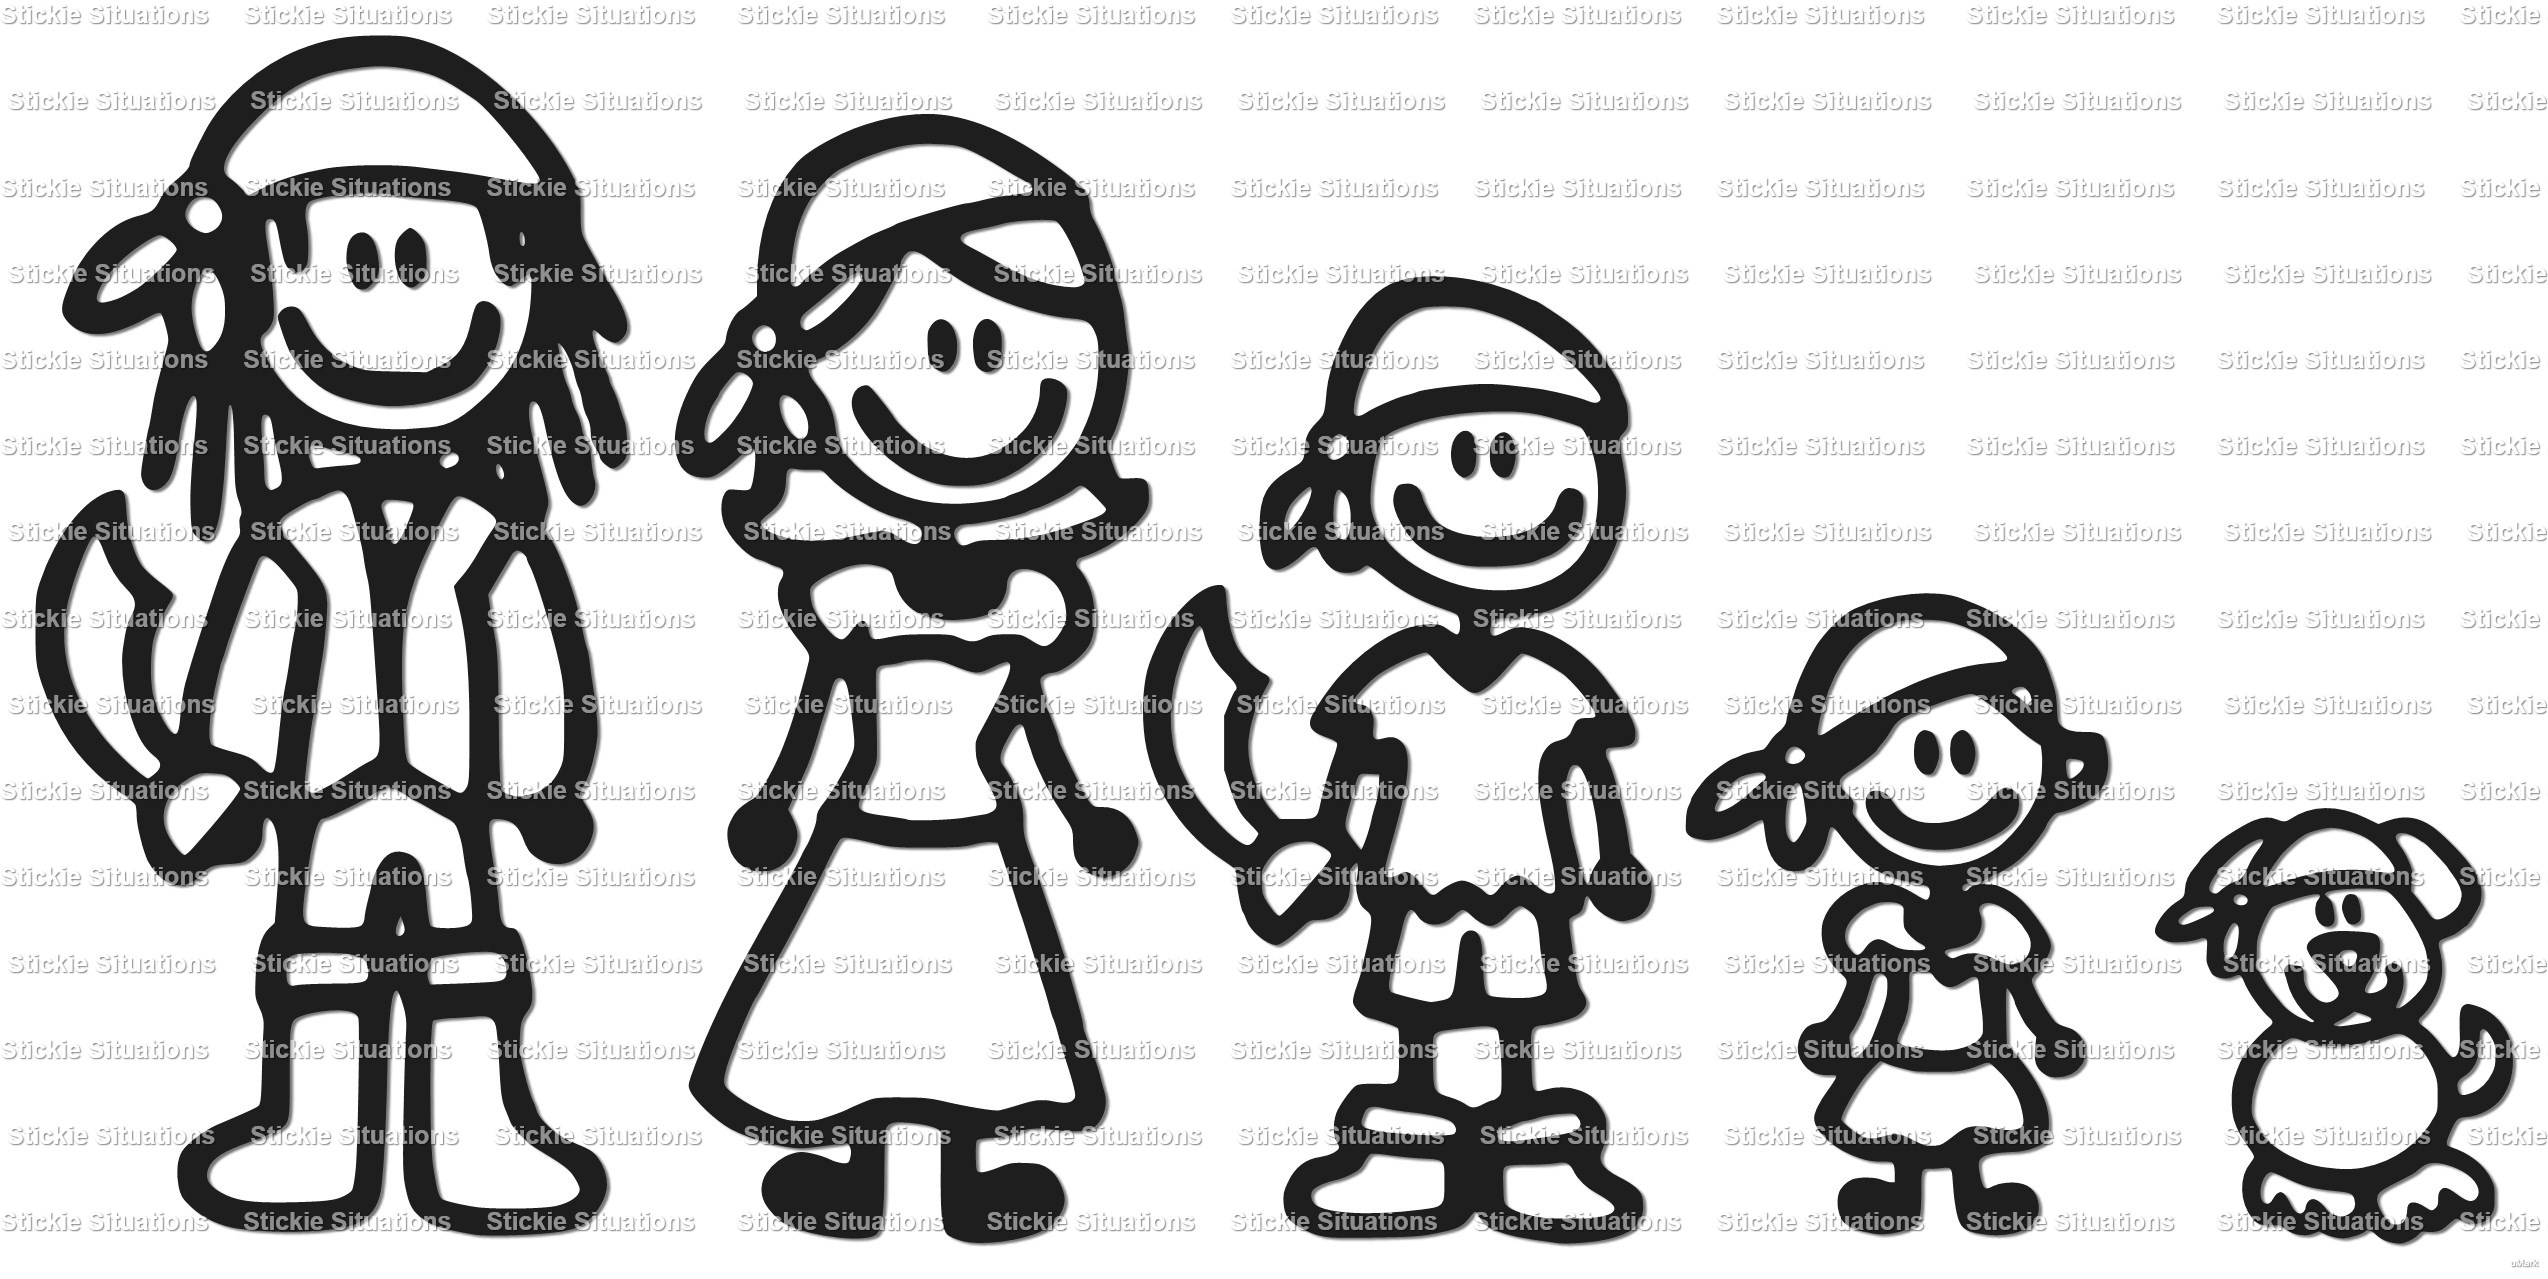 Pirate Family Car Decal Design   Stickie Situations  Online - Car decals design